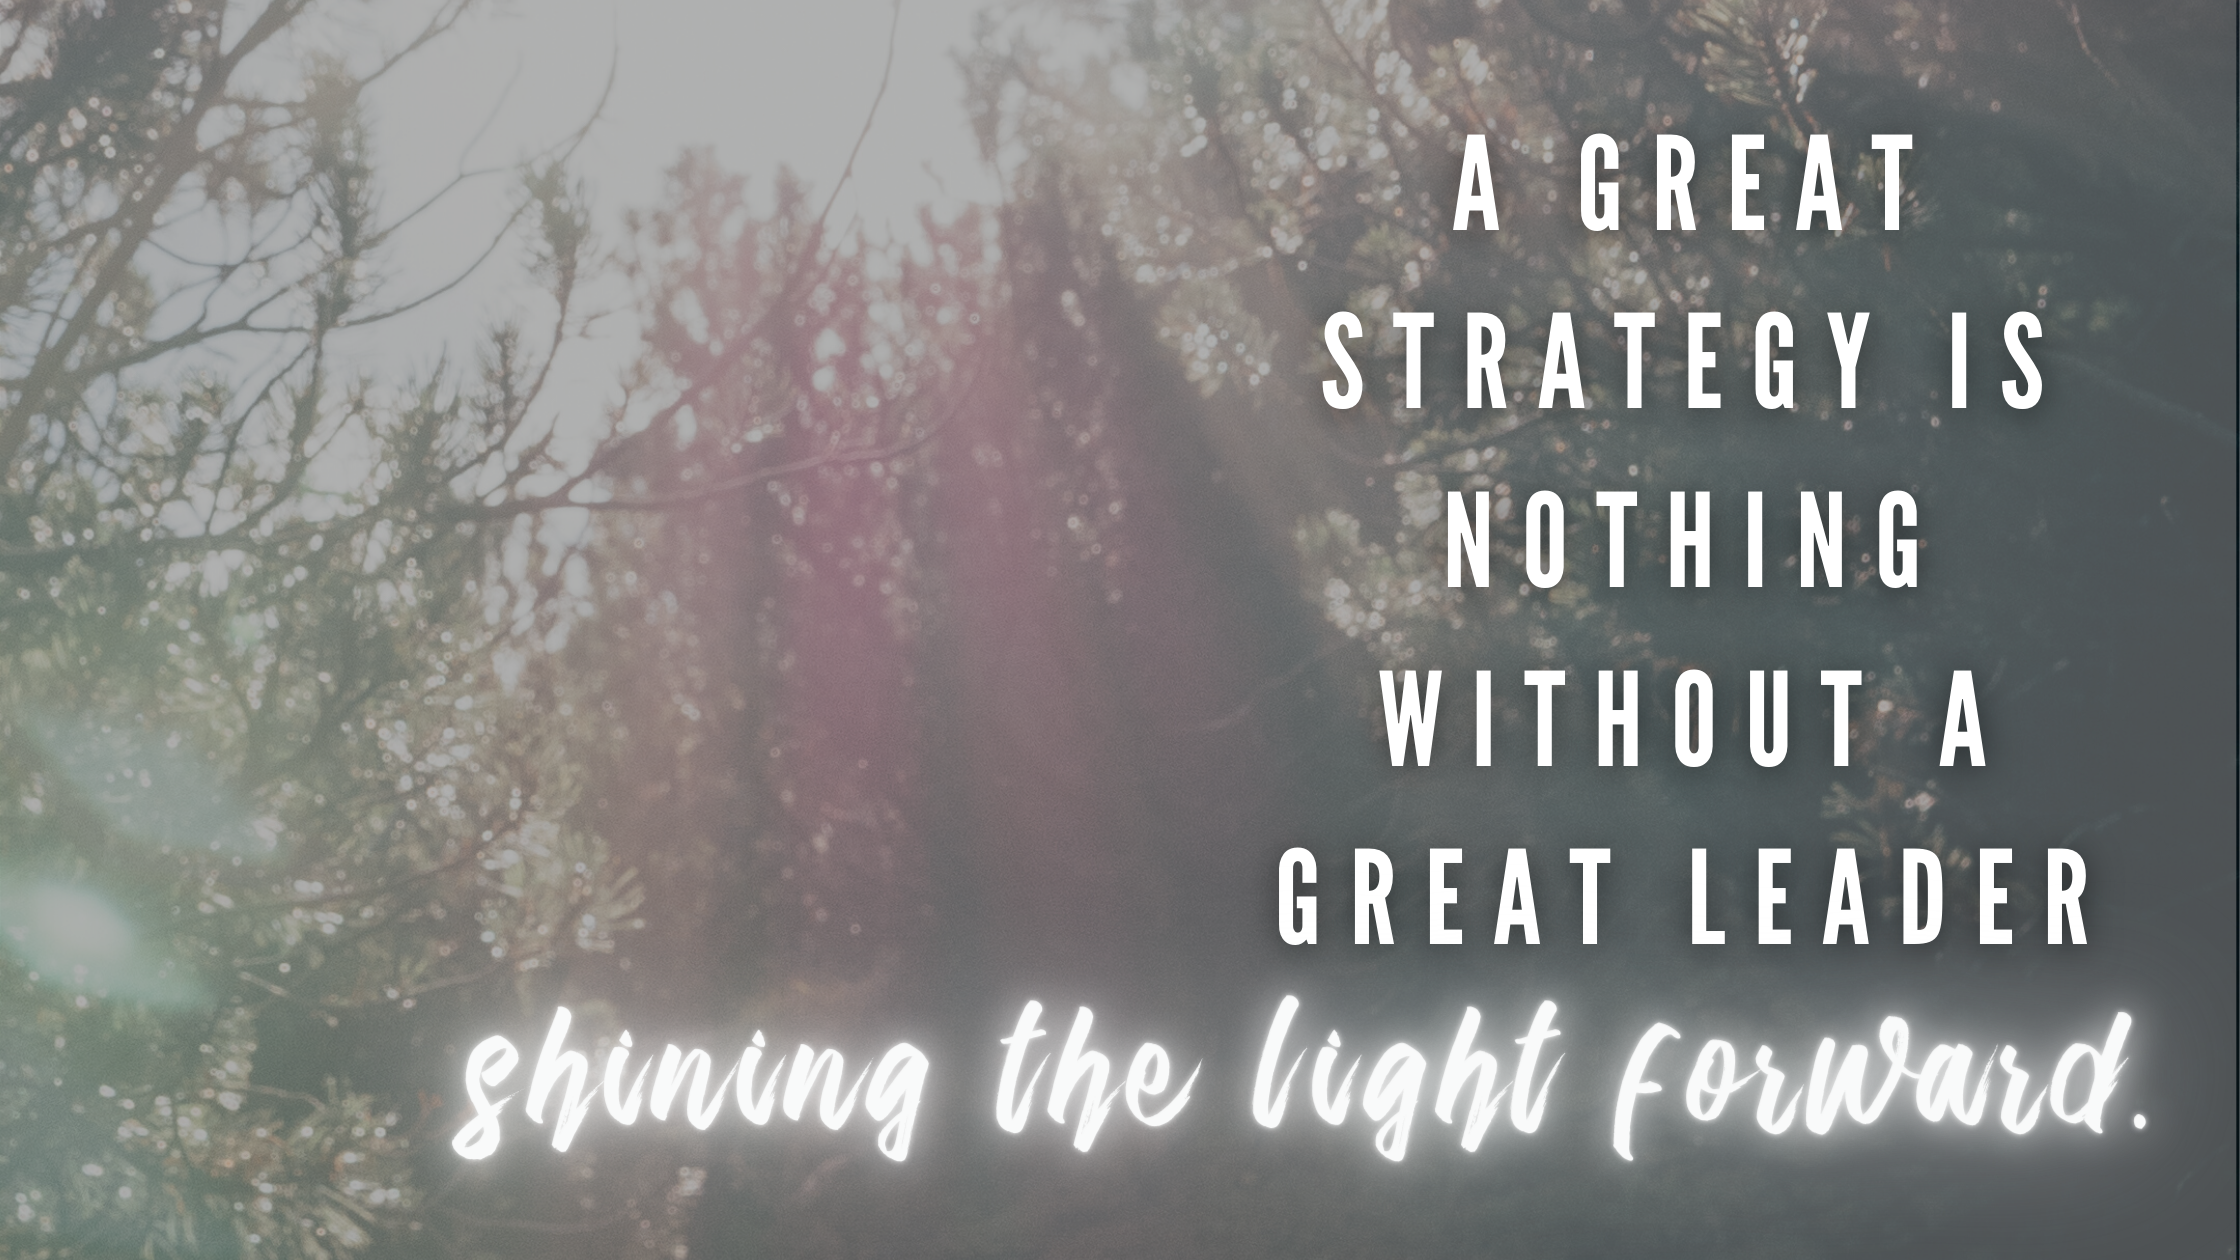 A great strategy is nothing without a great leader shining the light forward. (2)